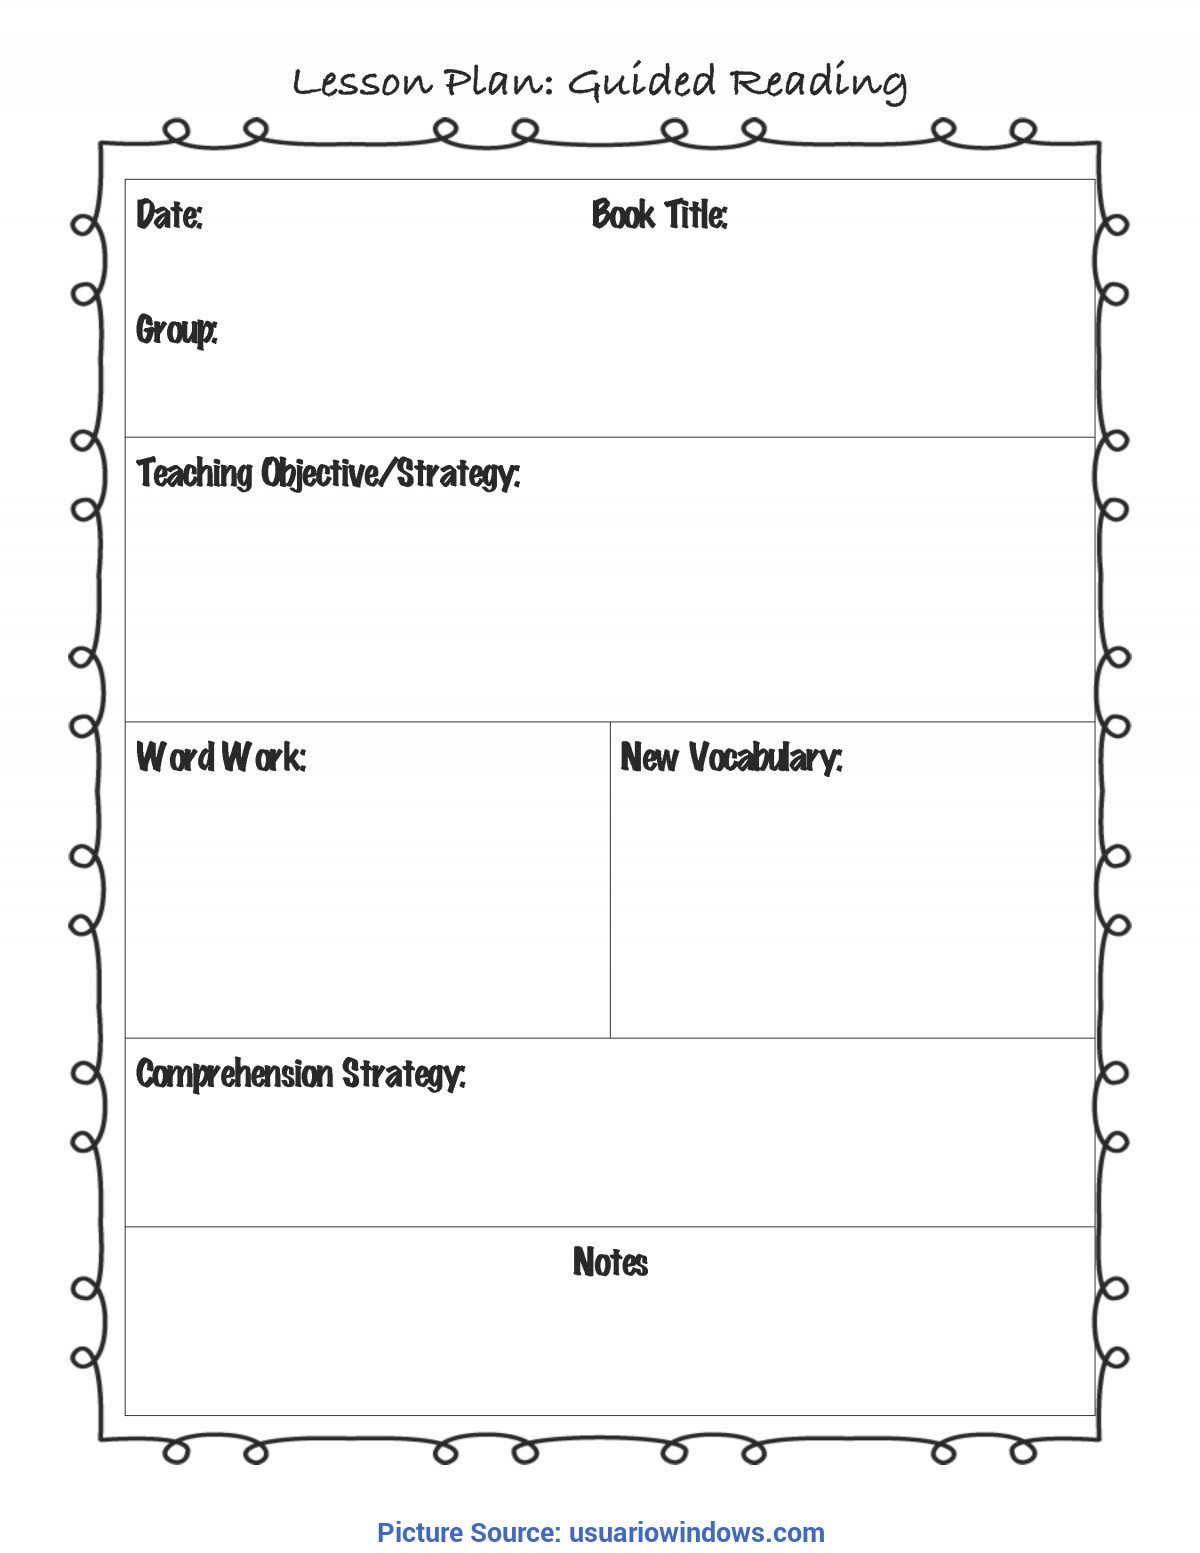 Regular Guided Reading Grade 5 Guided Reading Lesson Plan Template Fountas And Pinnell | Busines